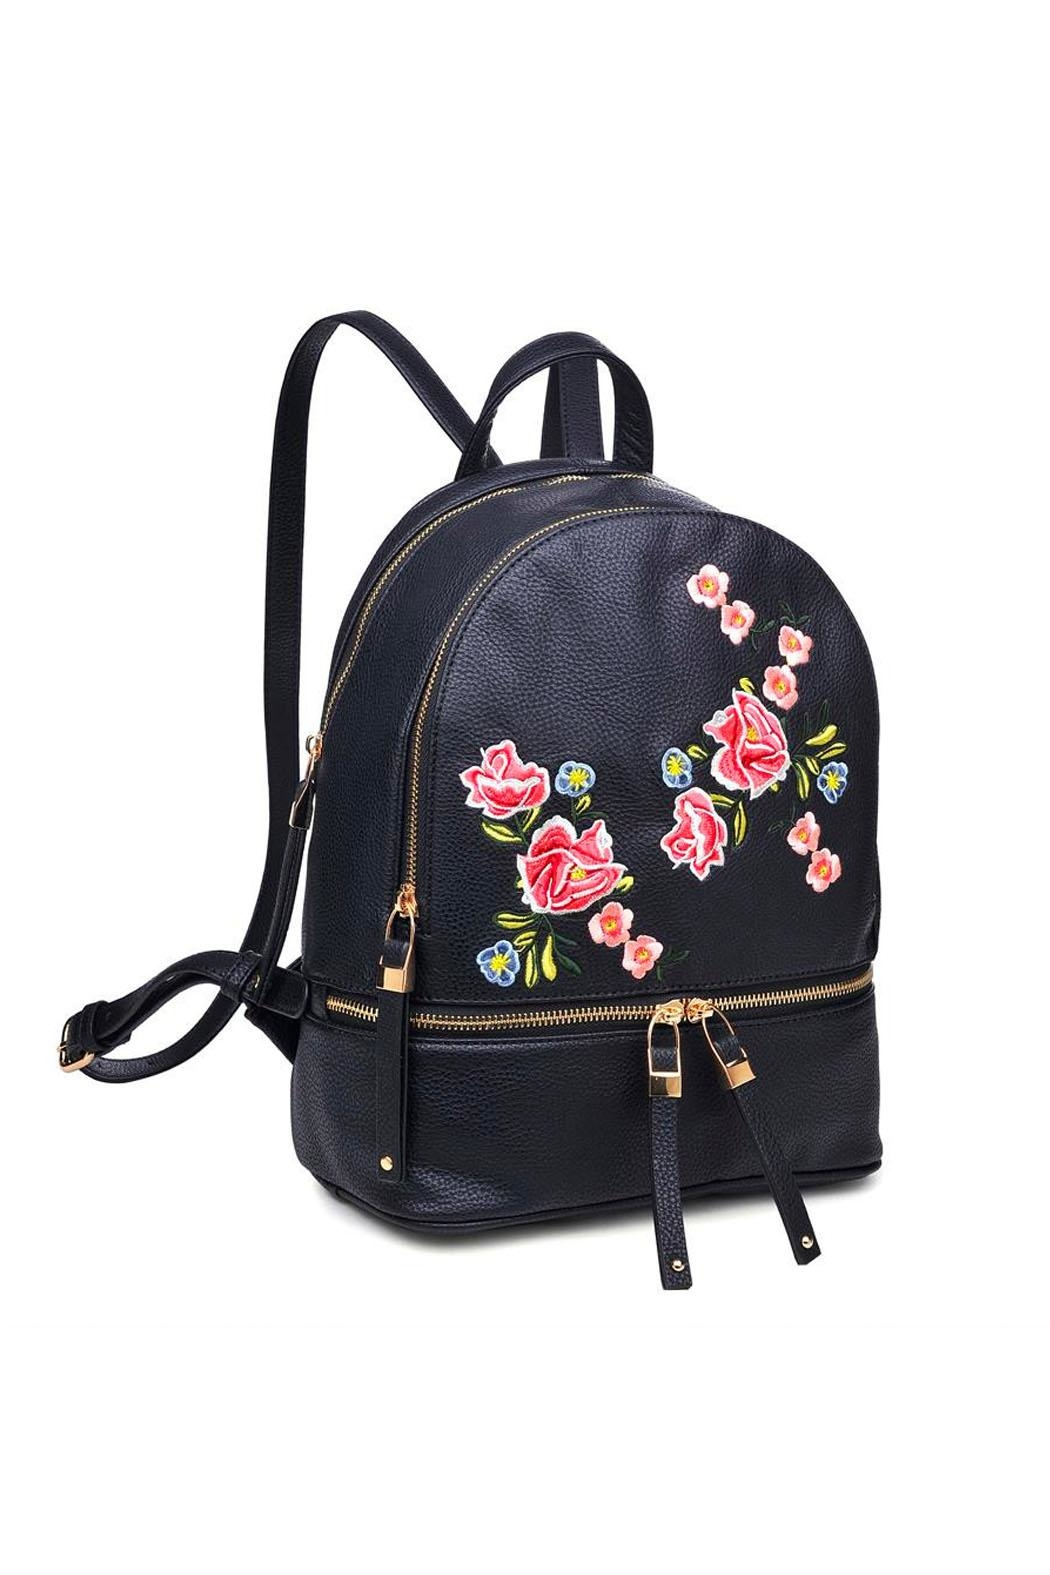 Urban Expressions Rose Backpack From New York By Let's Bag